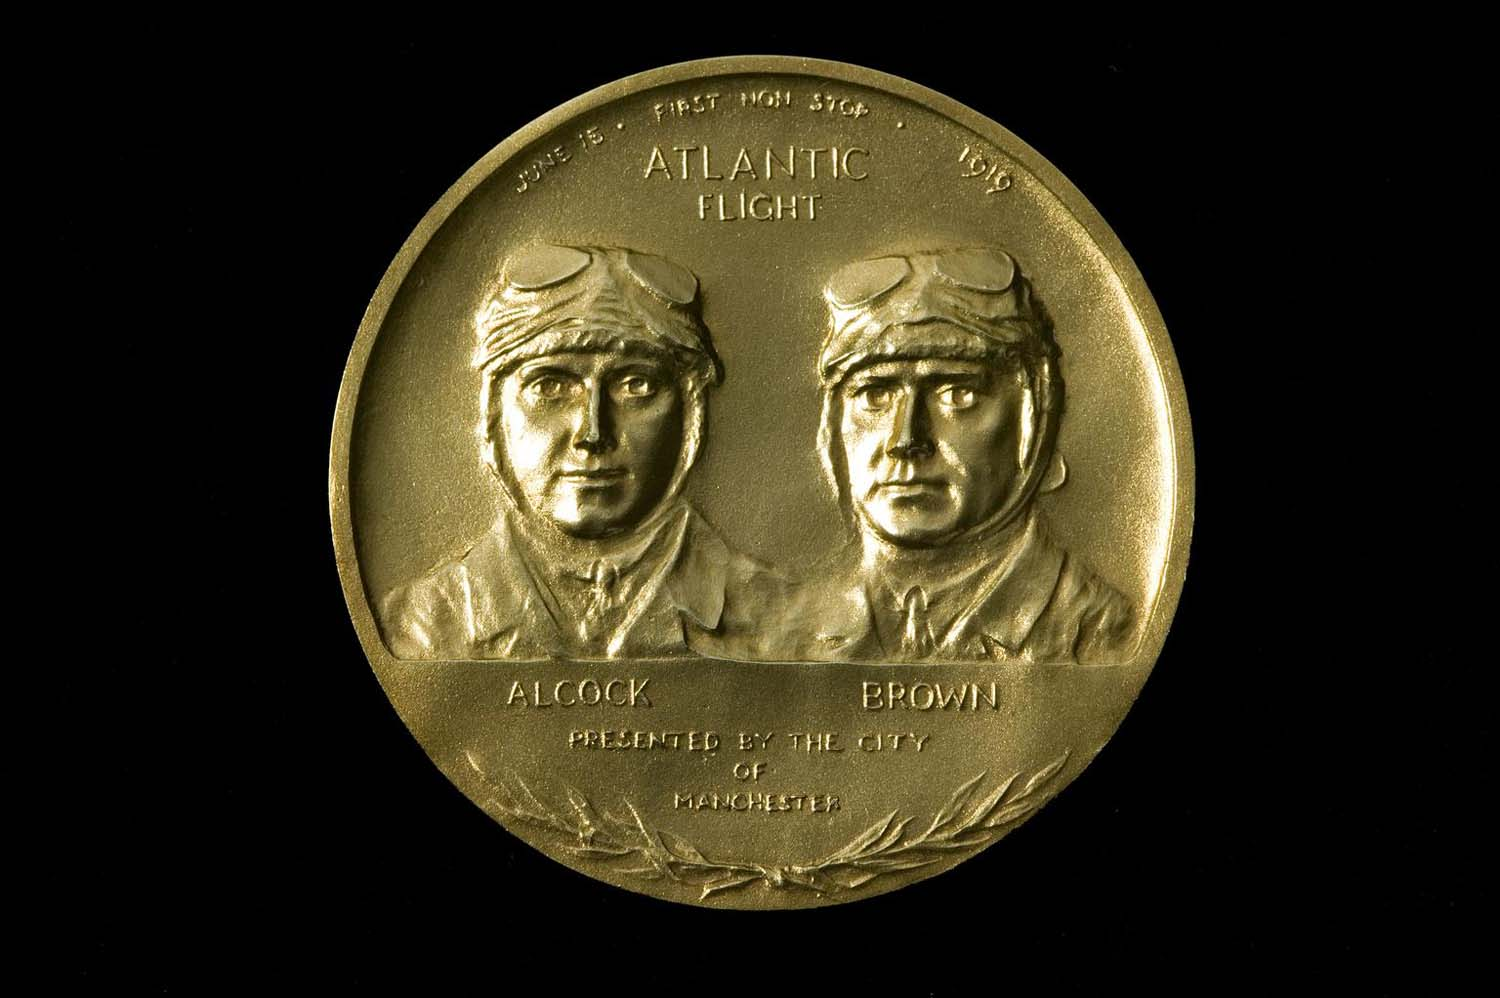 a photo of a gold medal with image of two men on its front